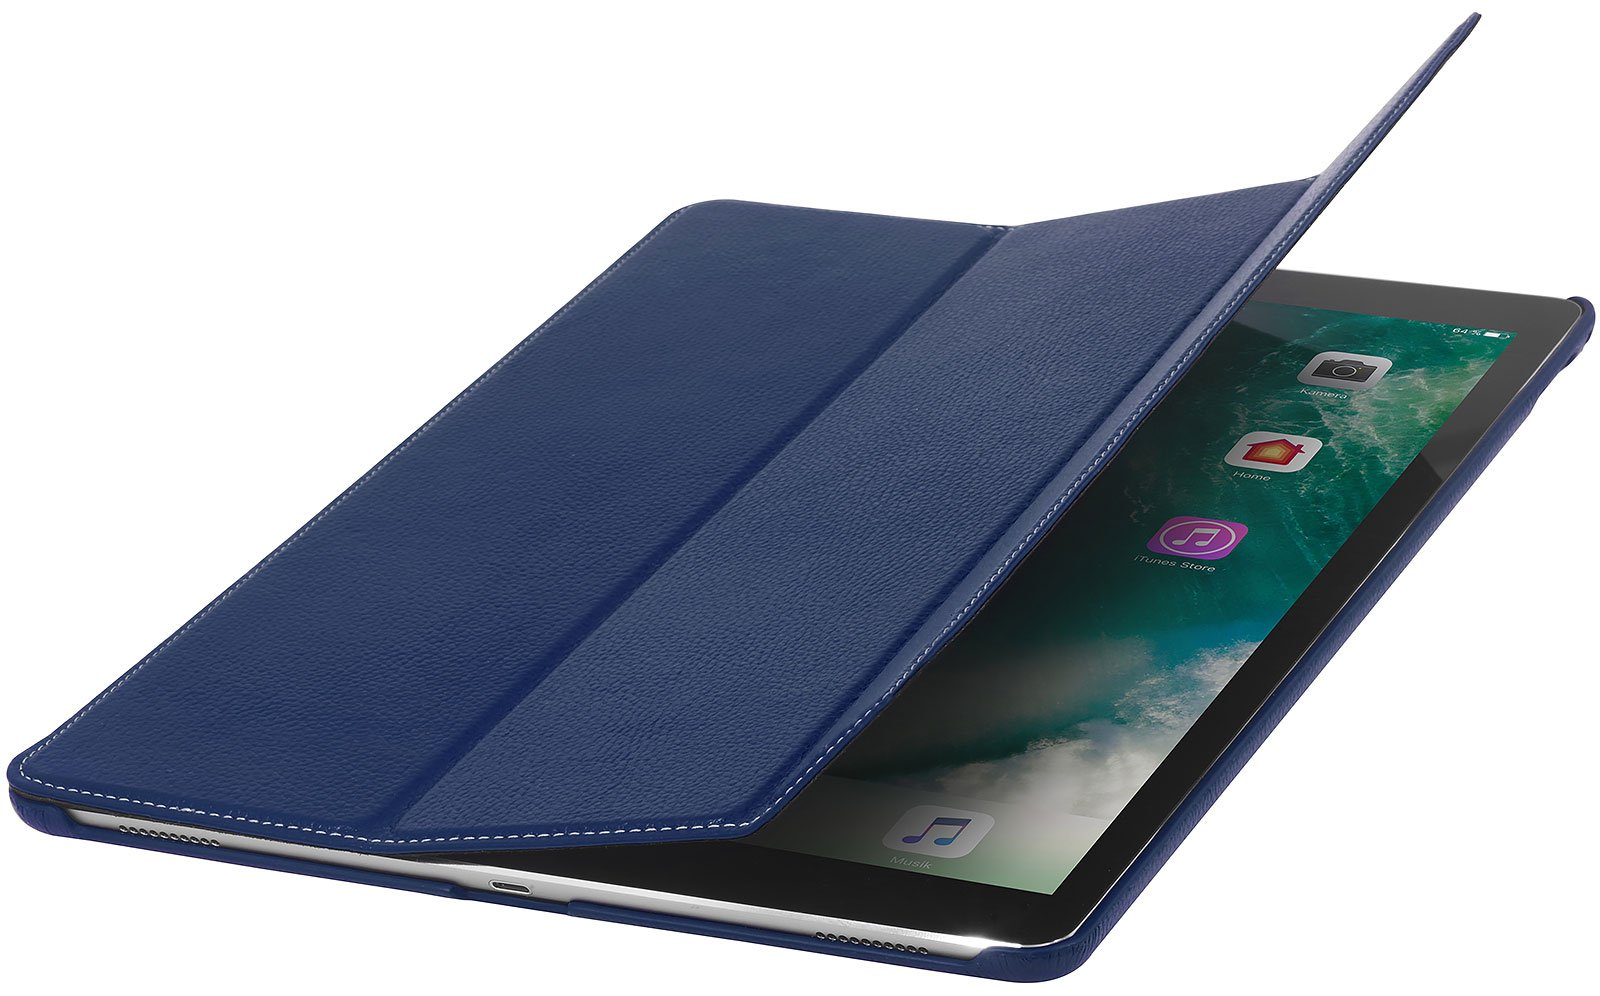 StilGut Couverture, Case for Apple iPad Pro 12.9'' (2017 and Previous Editions), Genuine Leather Case with Folded Cover Design, Stand Function & Smart-Cover (Auto Sleep, Wake-up), Navy Blue